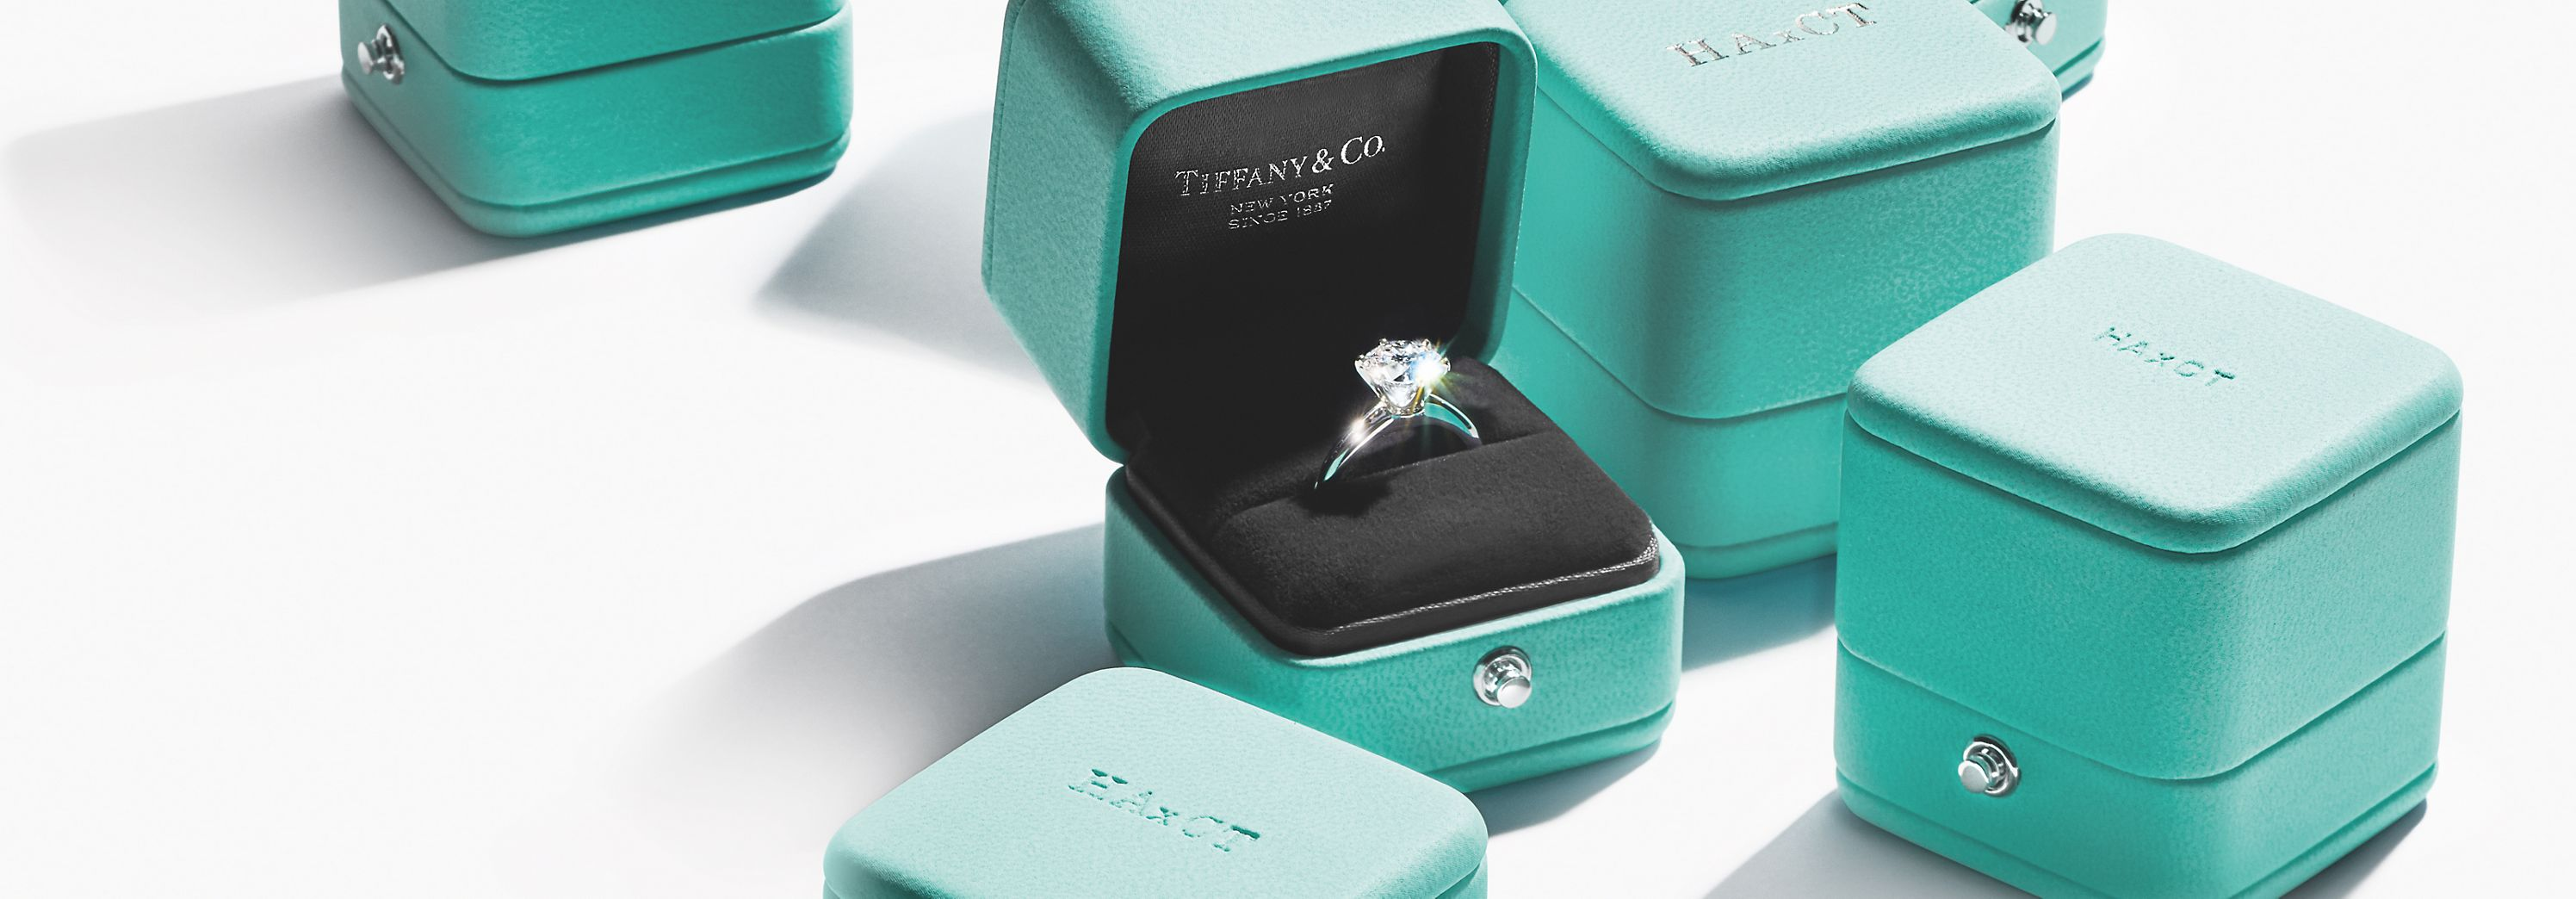 瀏覽 Tiffany & Co. 鑽石訂情戒指